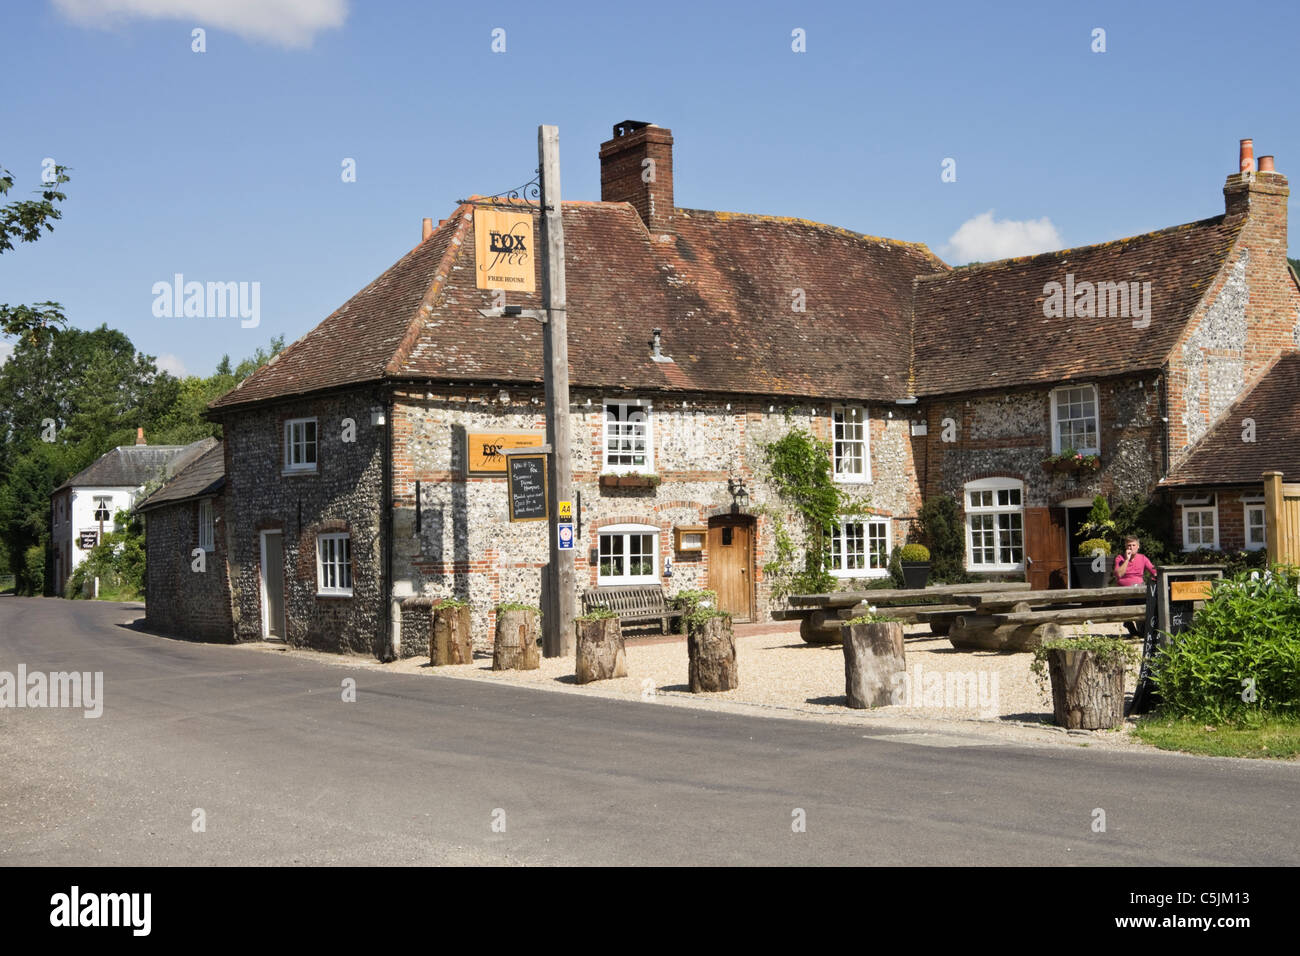 Traditional flintstone country village pub in South Downs National Park. Charlton, West Sussex, England, UK. - Stock Image